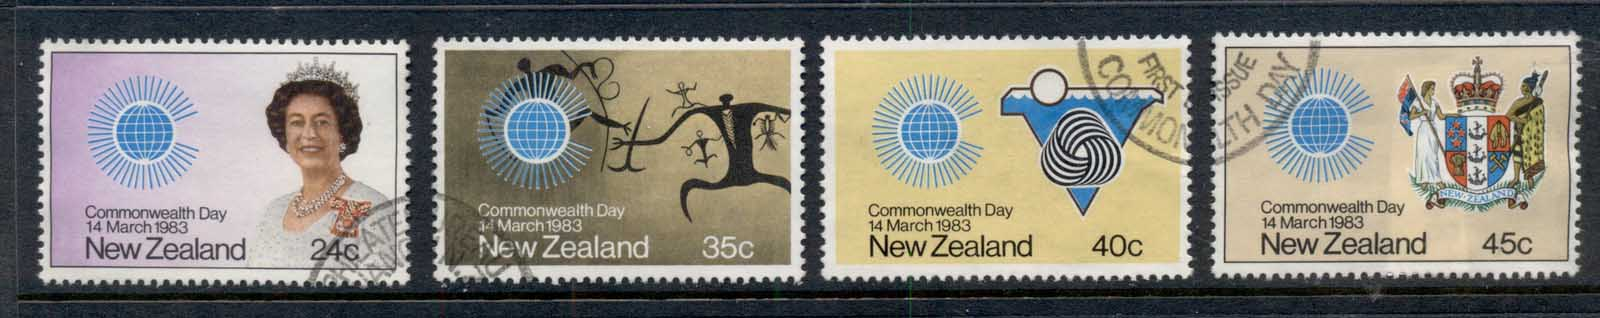 New Zealand 1983 Commonwealth Day FU